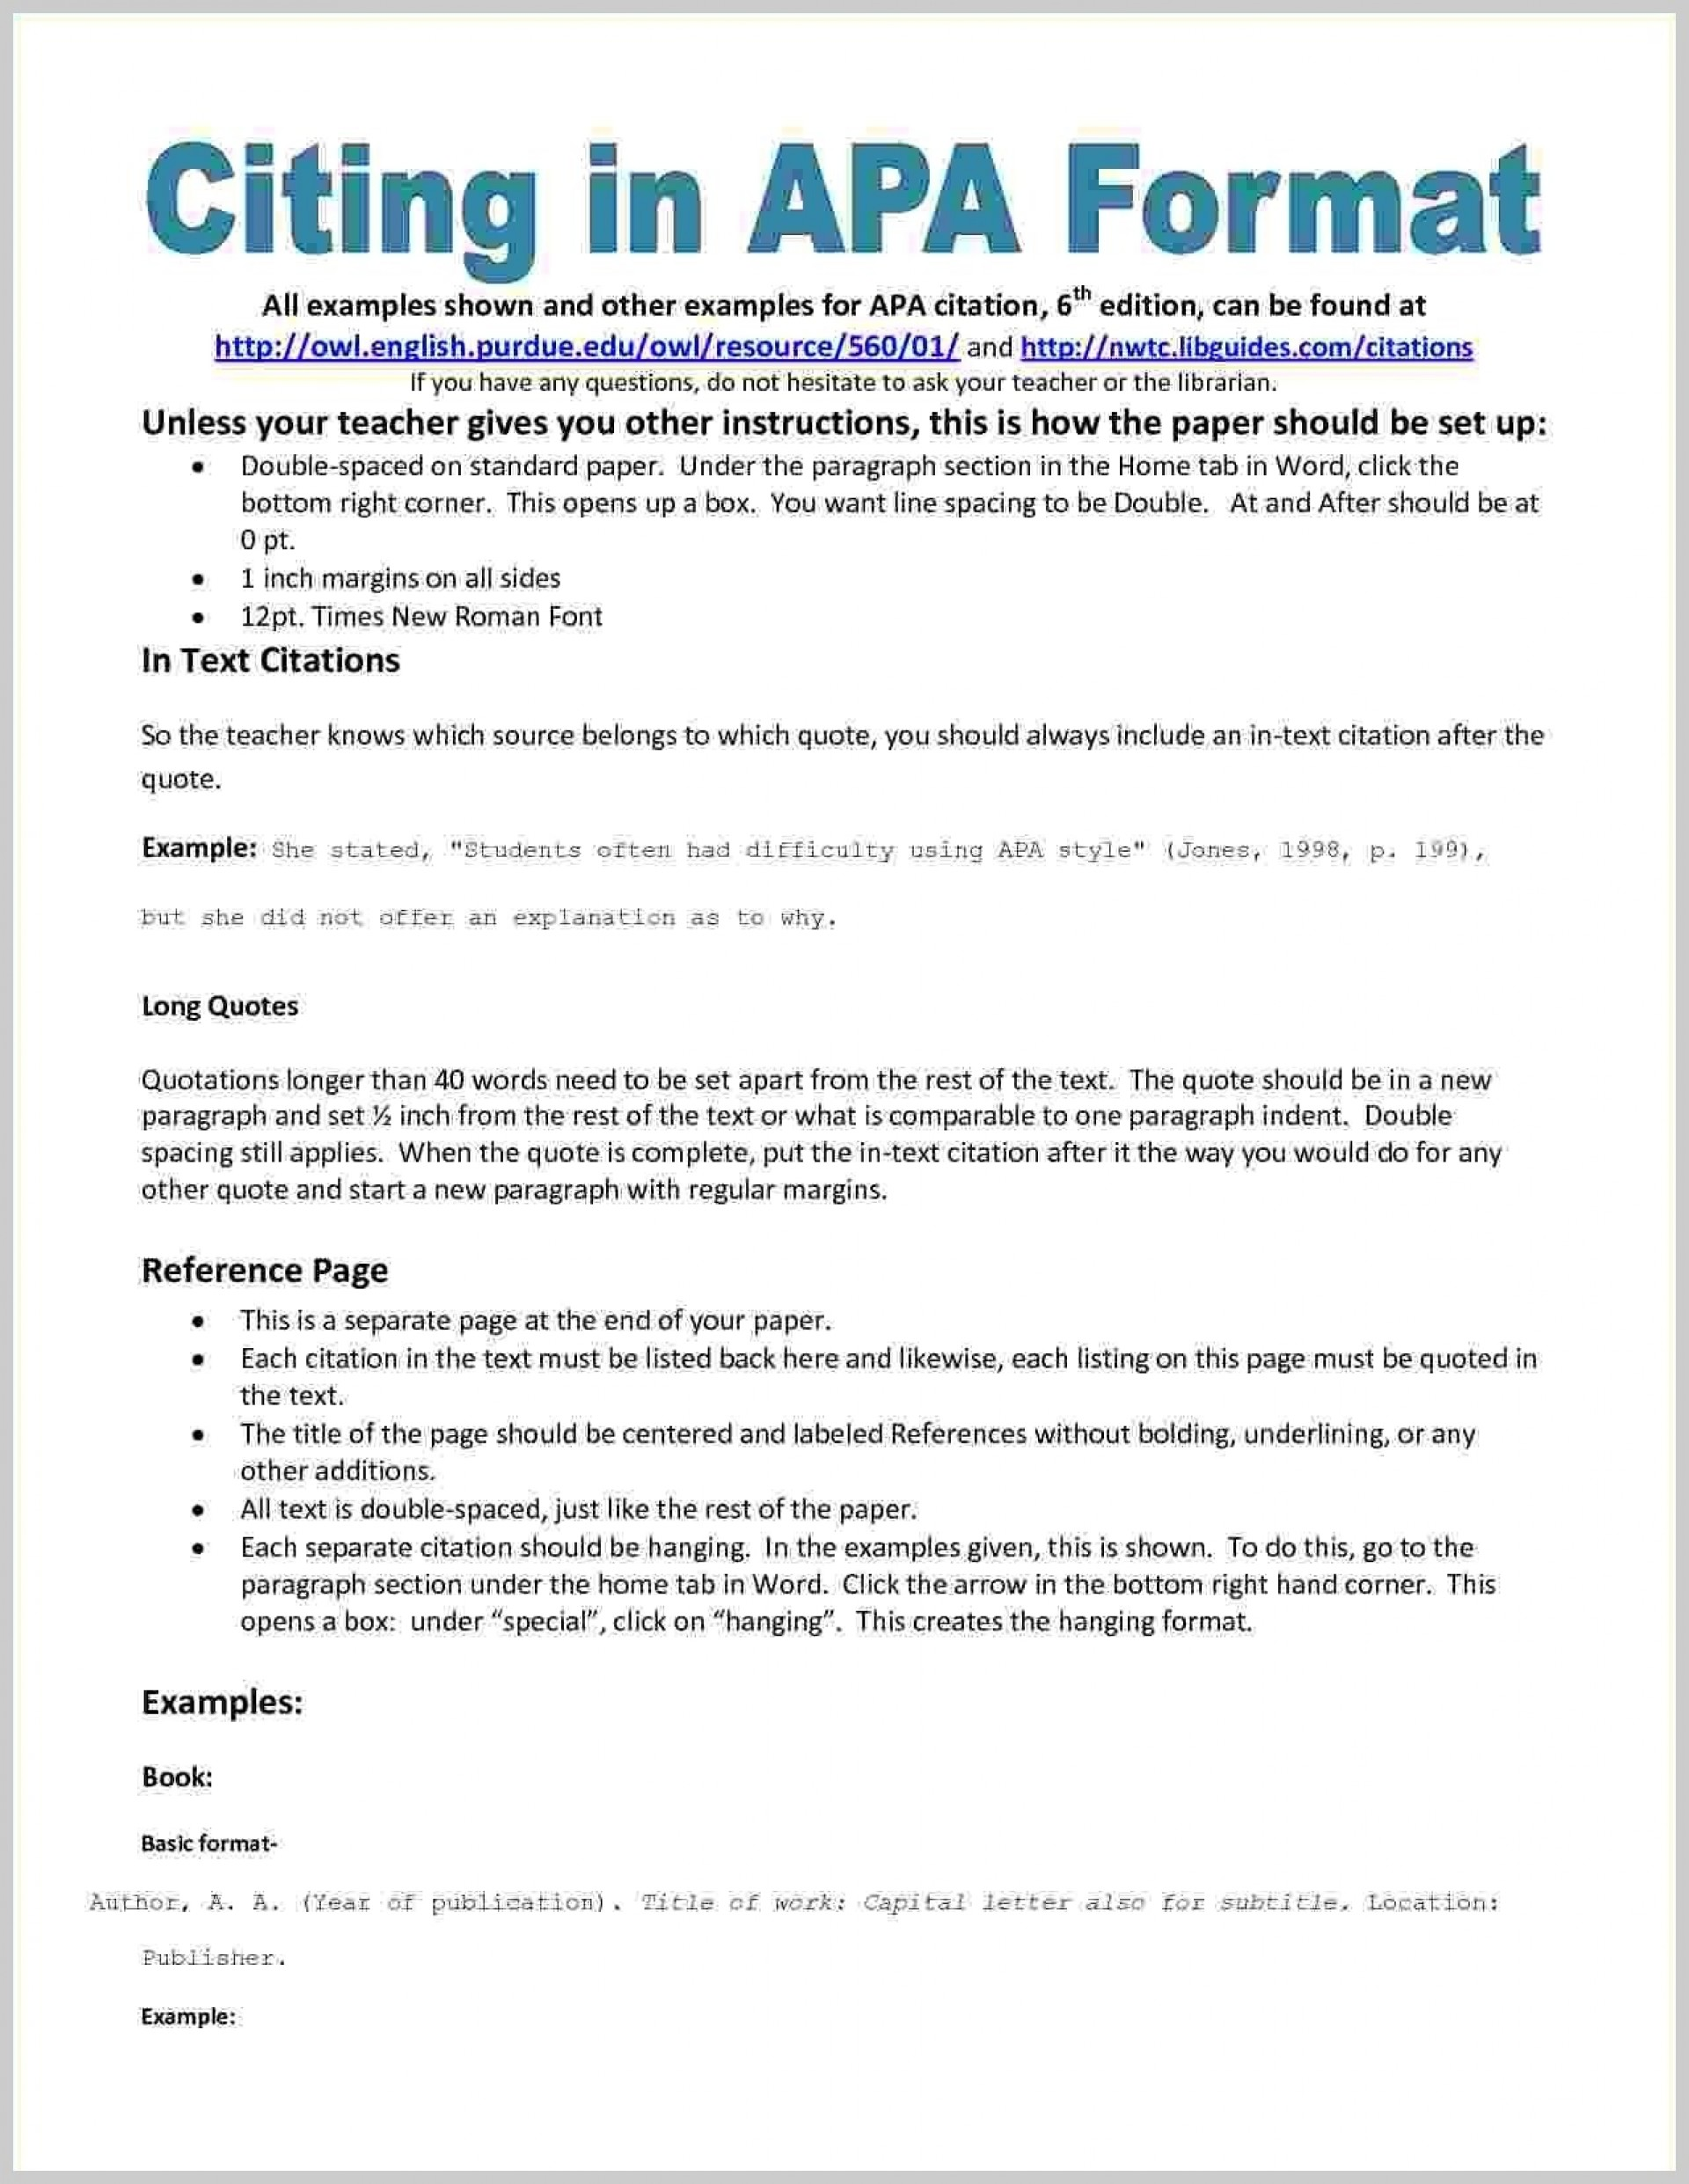 002 Research Paper Database Security Apa Style Reference In Text Citation Mla Examples Toreto Co Striking - Draft Papers Pdf Related 1920